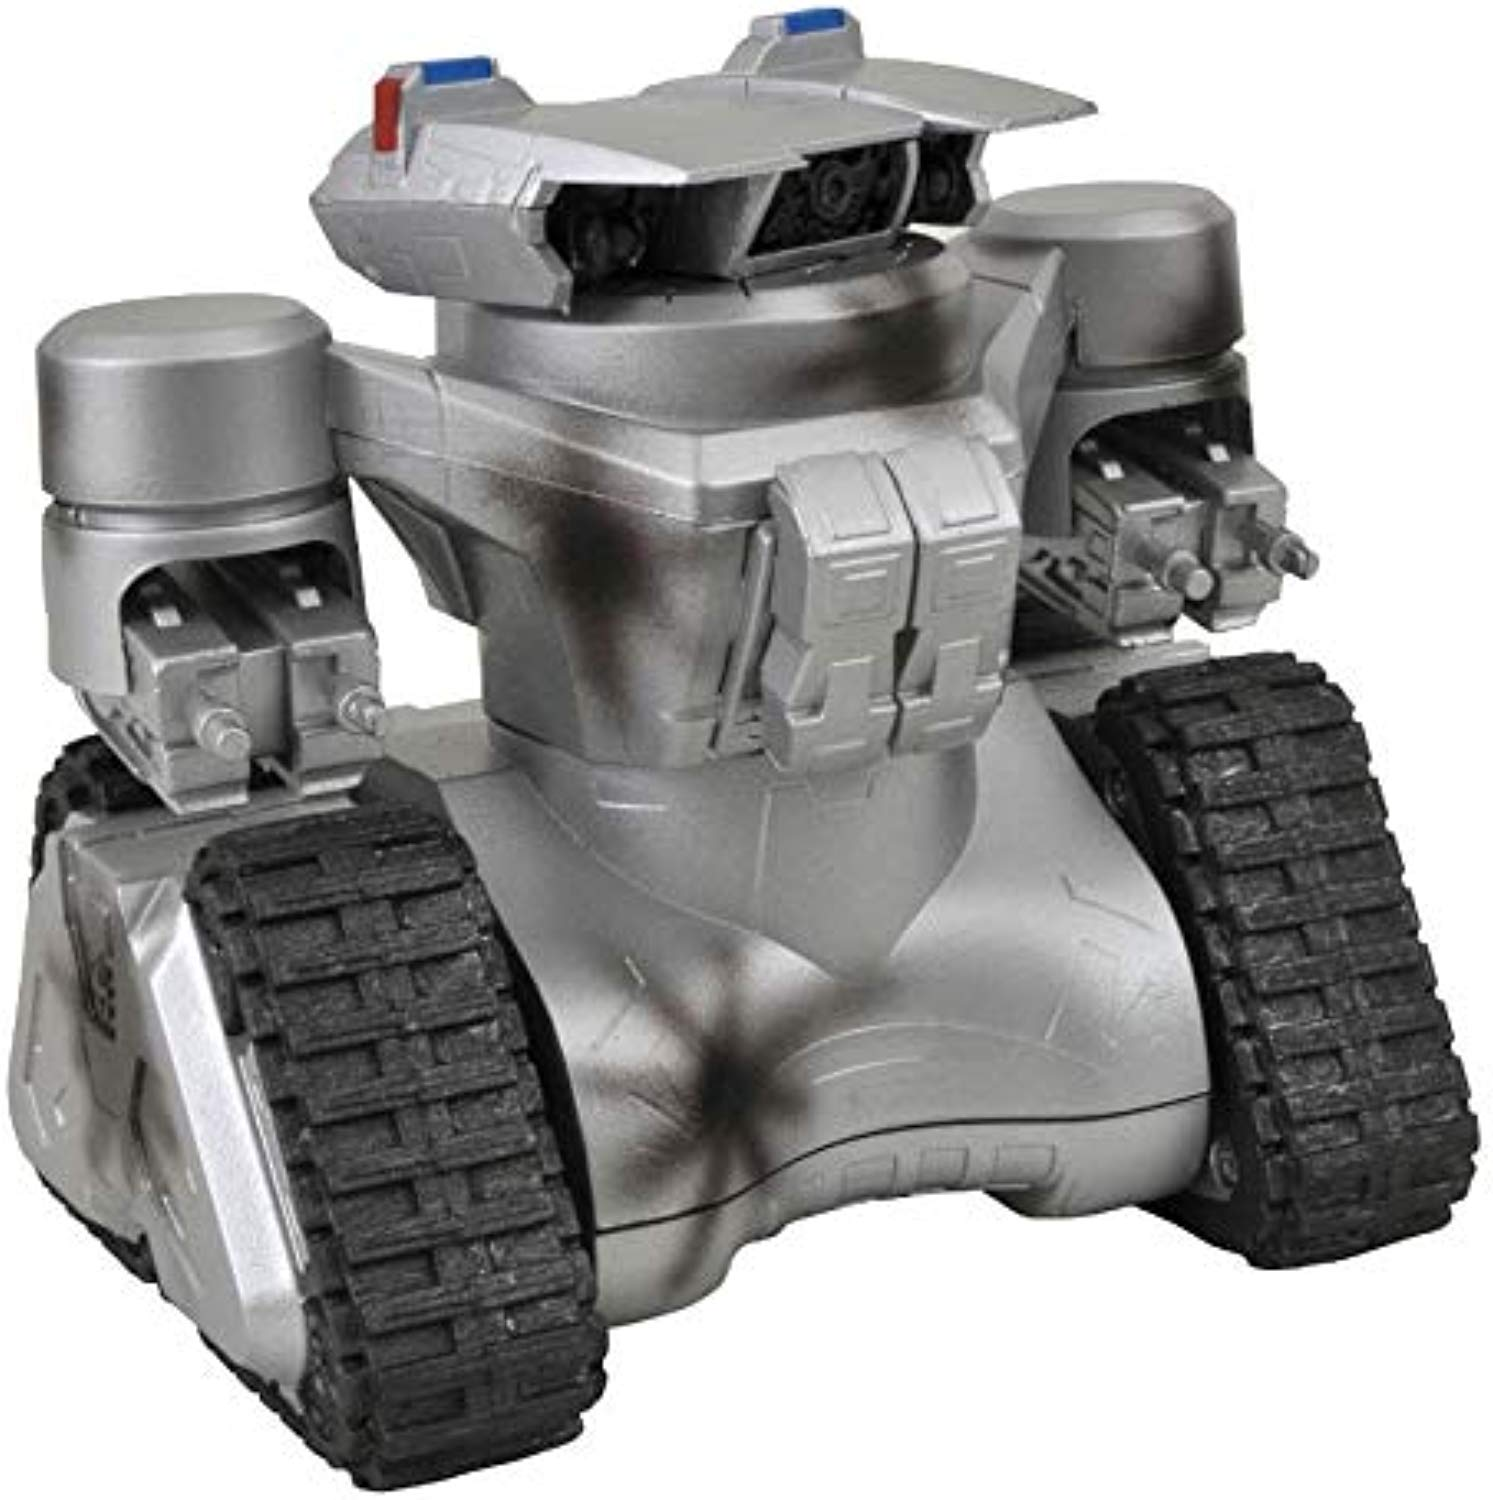 Terminator 2 Judgment Day MiniMates Battle Damaged Hunter Killer Tank Vehicle by Diamond Select giocattoli